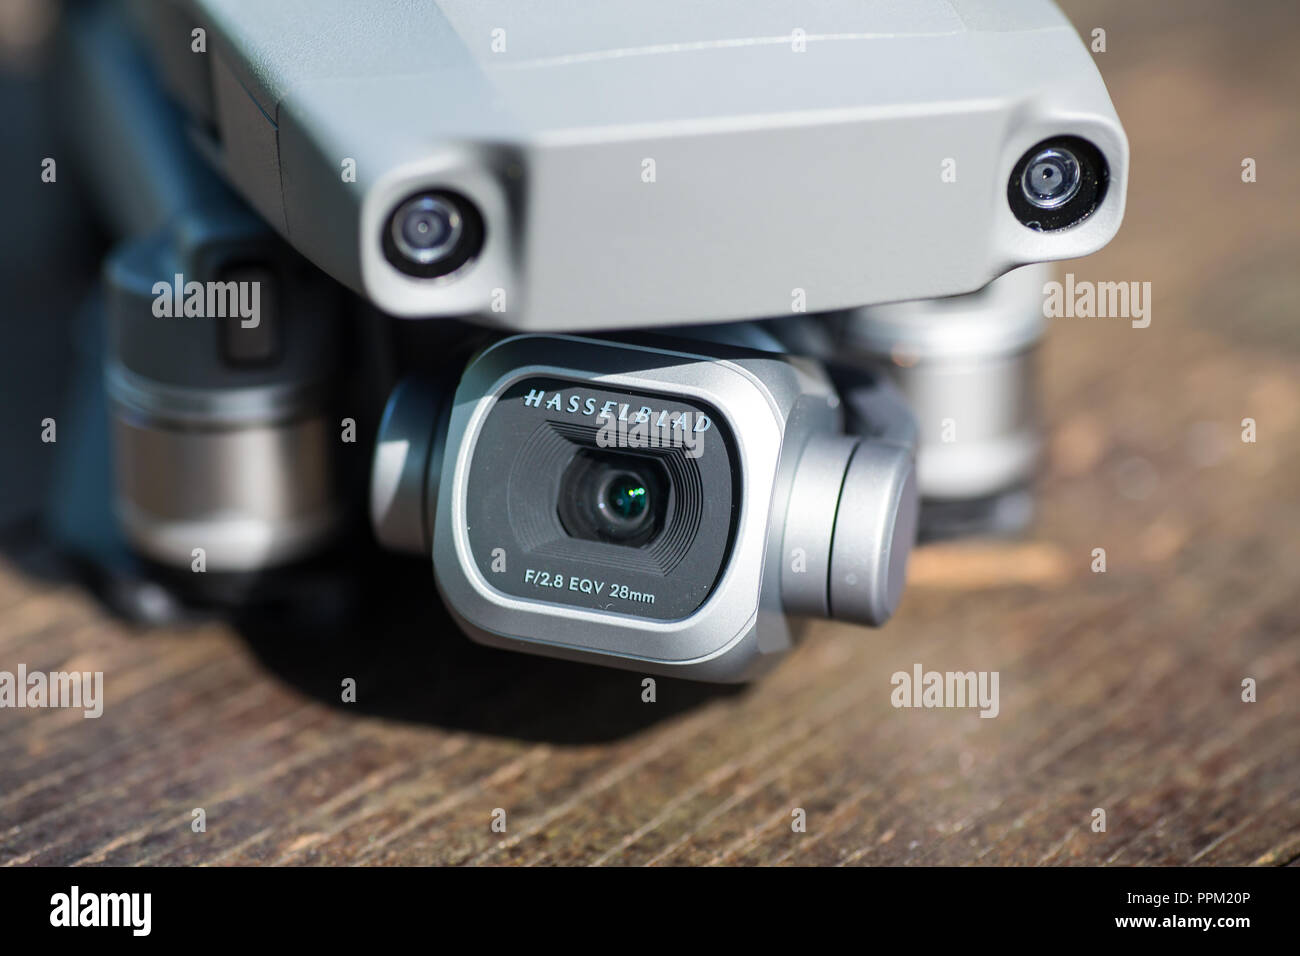 Close up of Hasselblad camera mounted on a mavic 2 pro with a